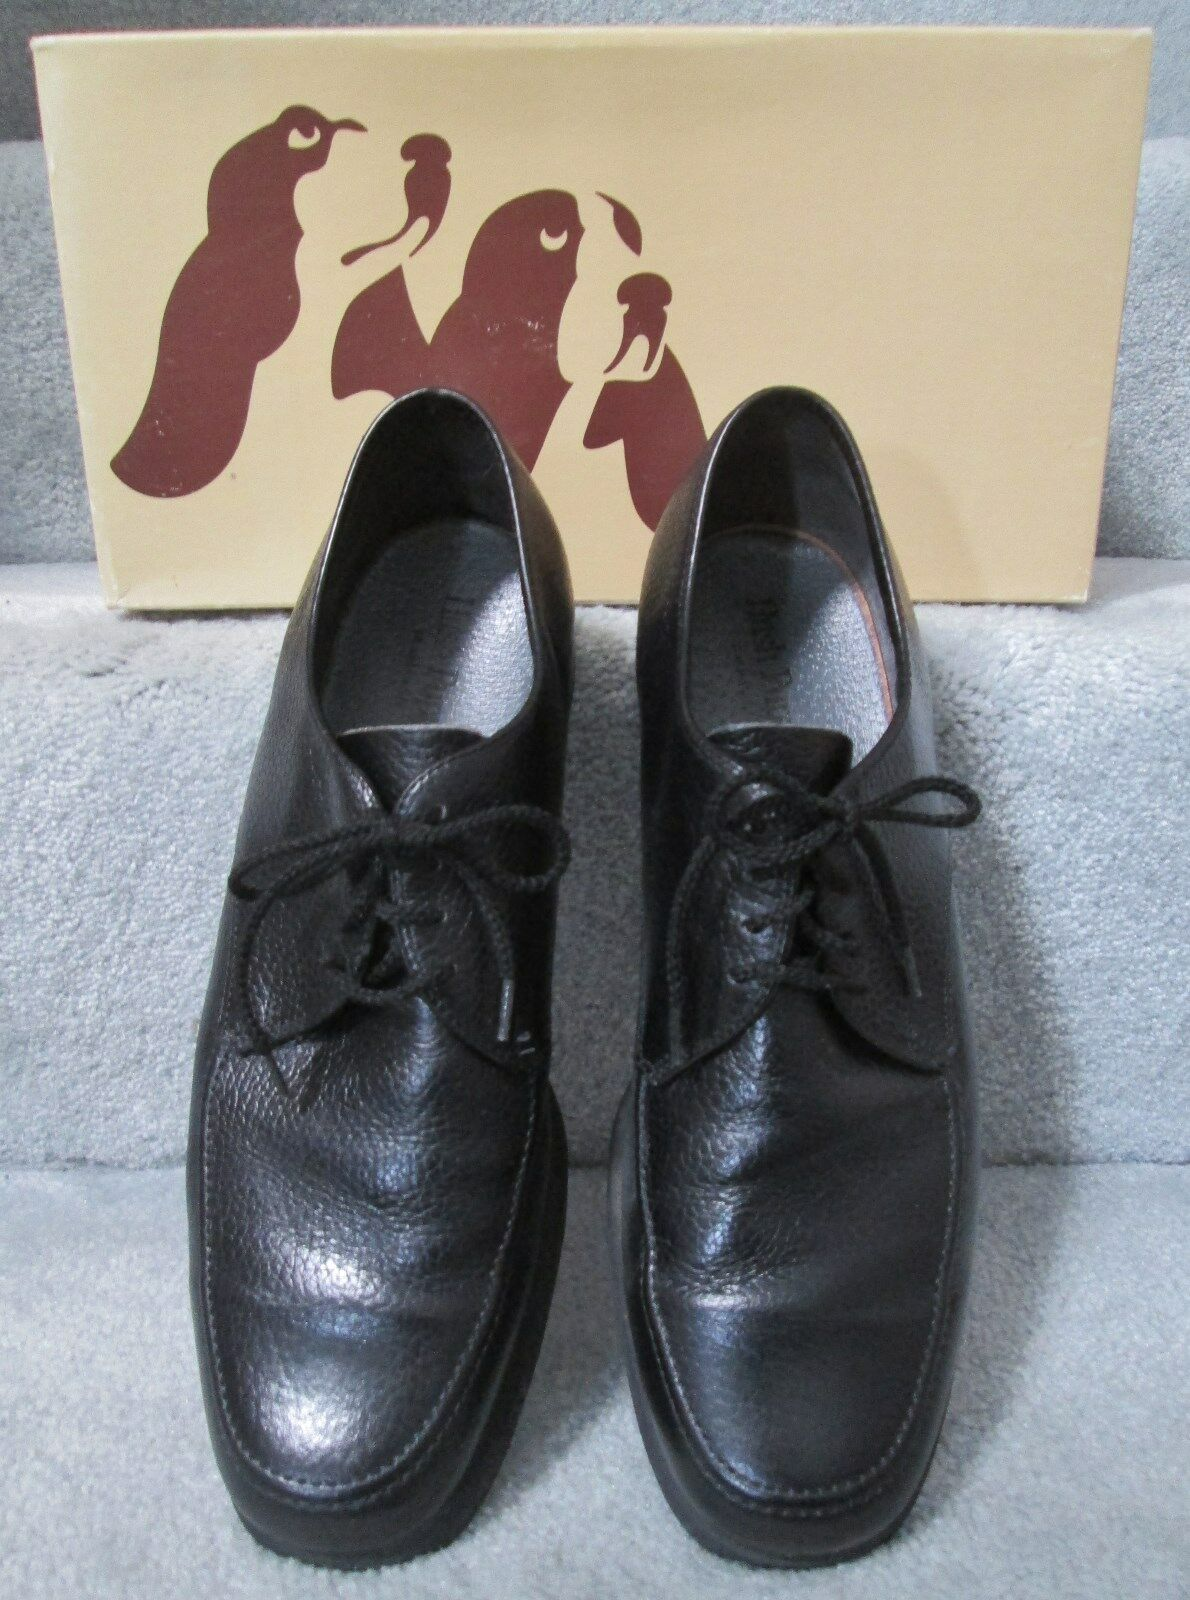 Men's HUSH PUPPIES Leather Duke II Black Pigskin Leather PUPPIES Oxford Dress Shoes - Size 9.5 M 18b12e